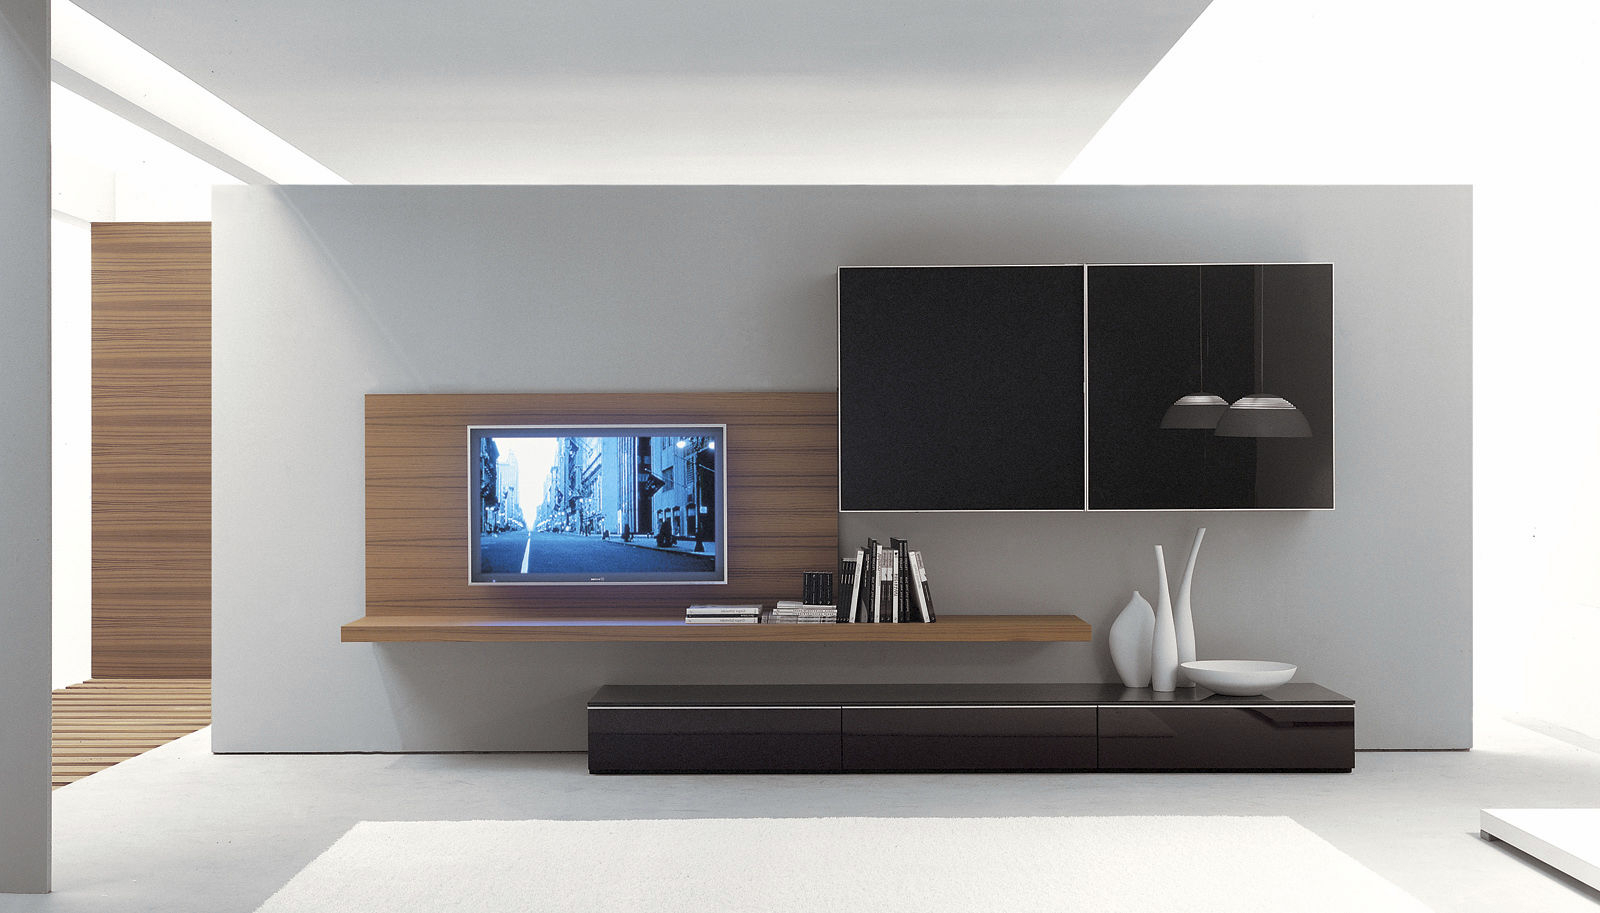 On The Wall Tv Units With Recent Wall Units: Astonishing Ideas On The Wall Tv Units Modern Tv Unit (View 14 of 20)